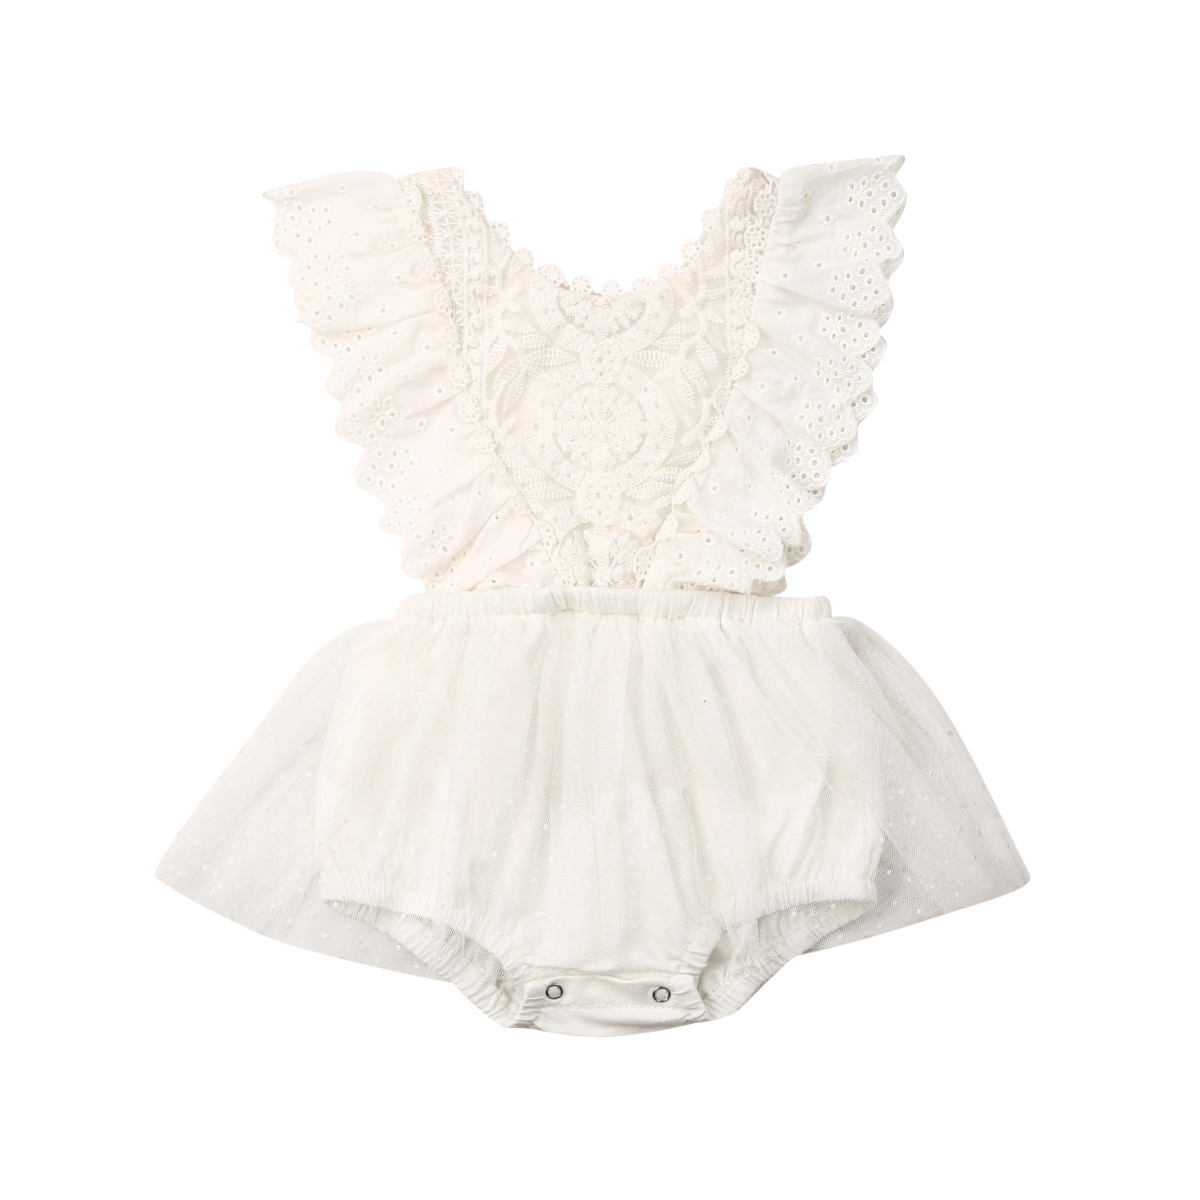 Summer Princess Girl Clothes Newborn Baby Girls Clothes Lace Romper Bodysuit Tutu Dress Outfits 0-24 Months